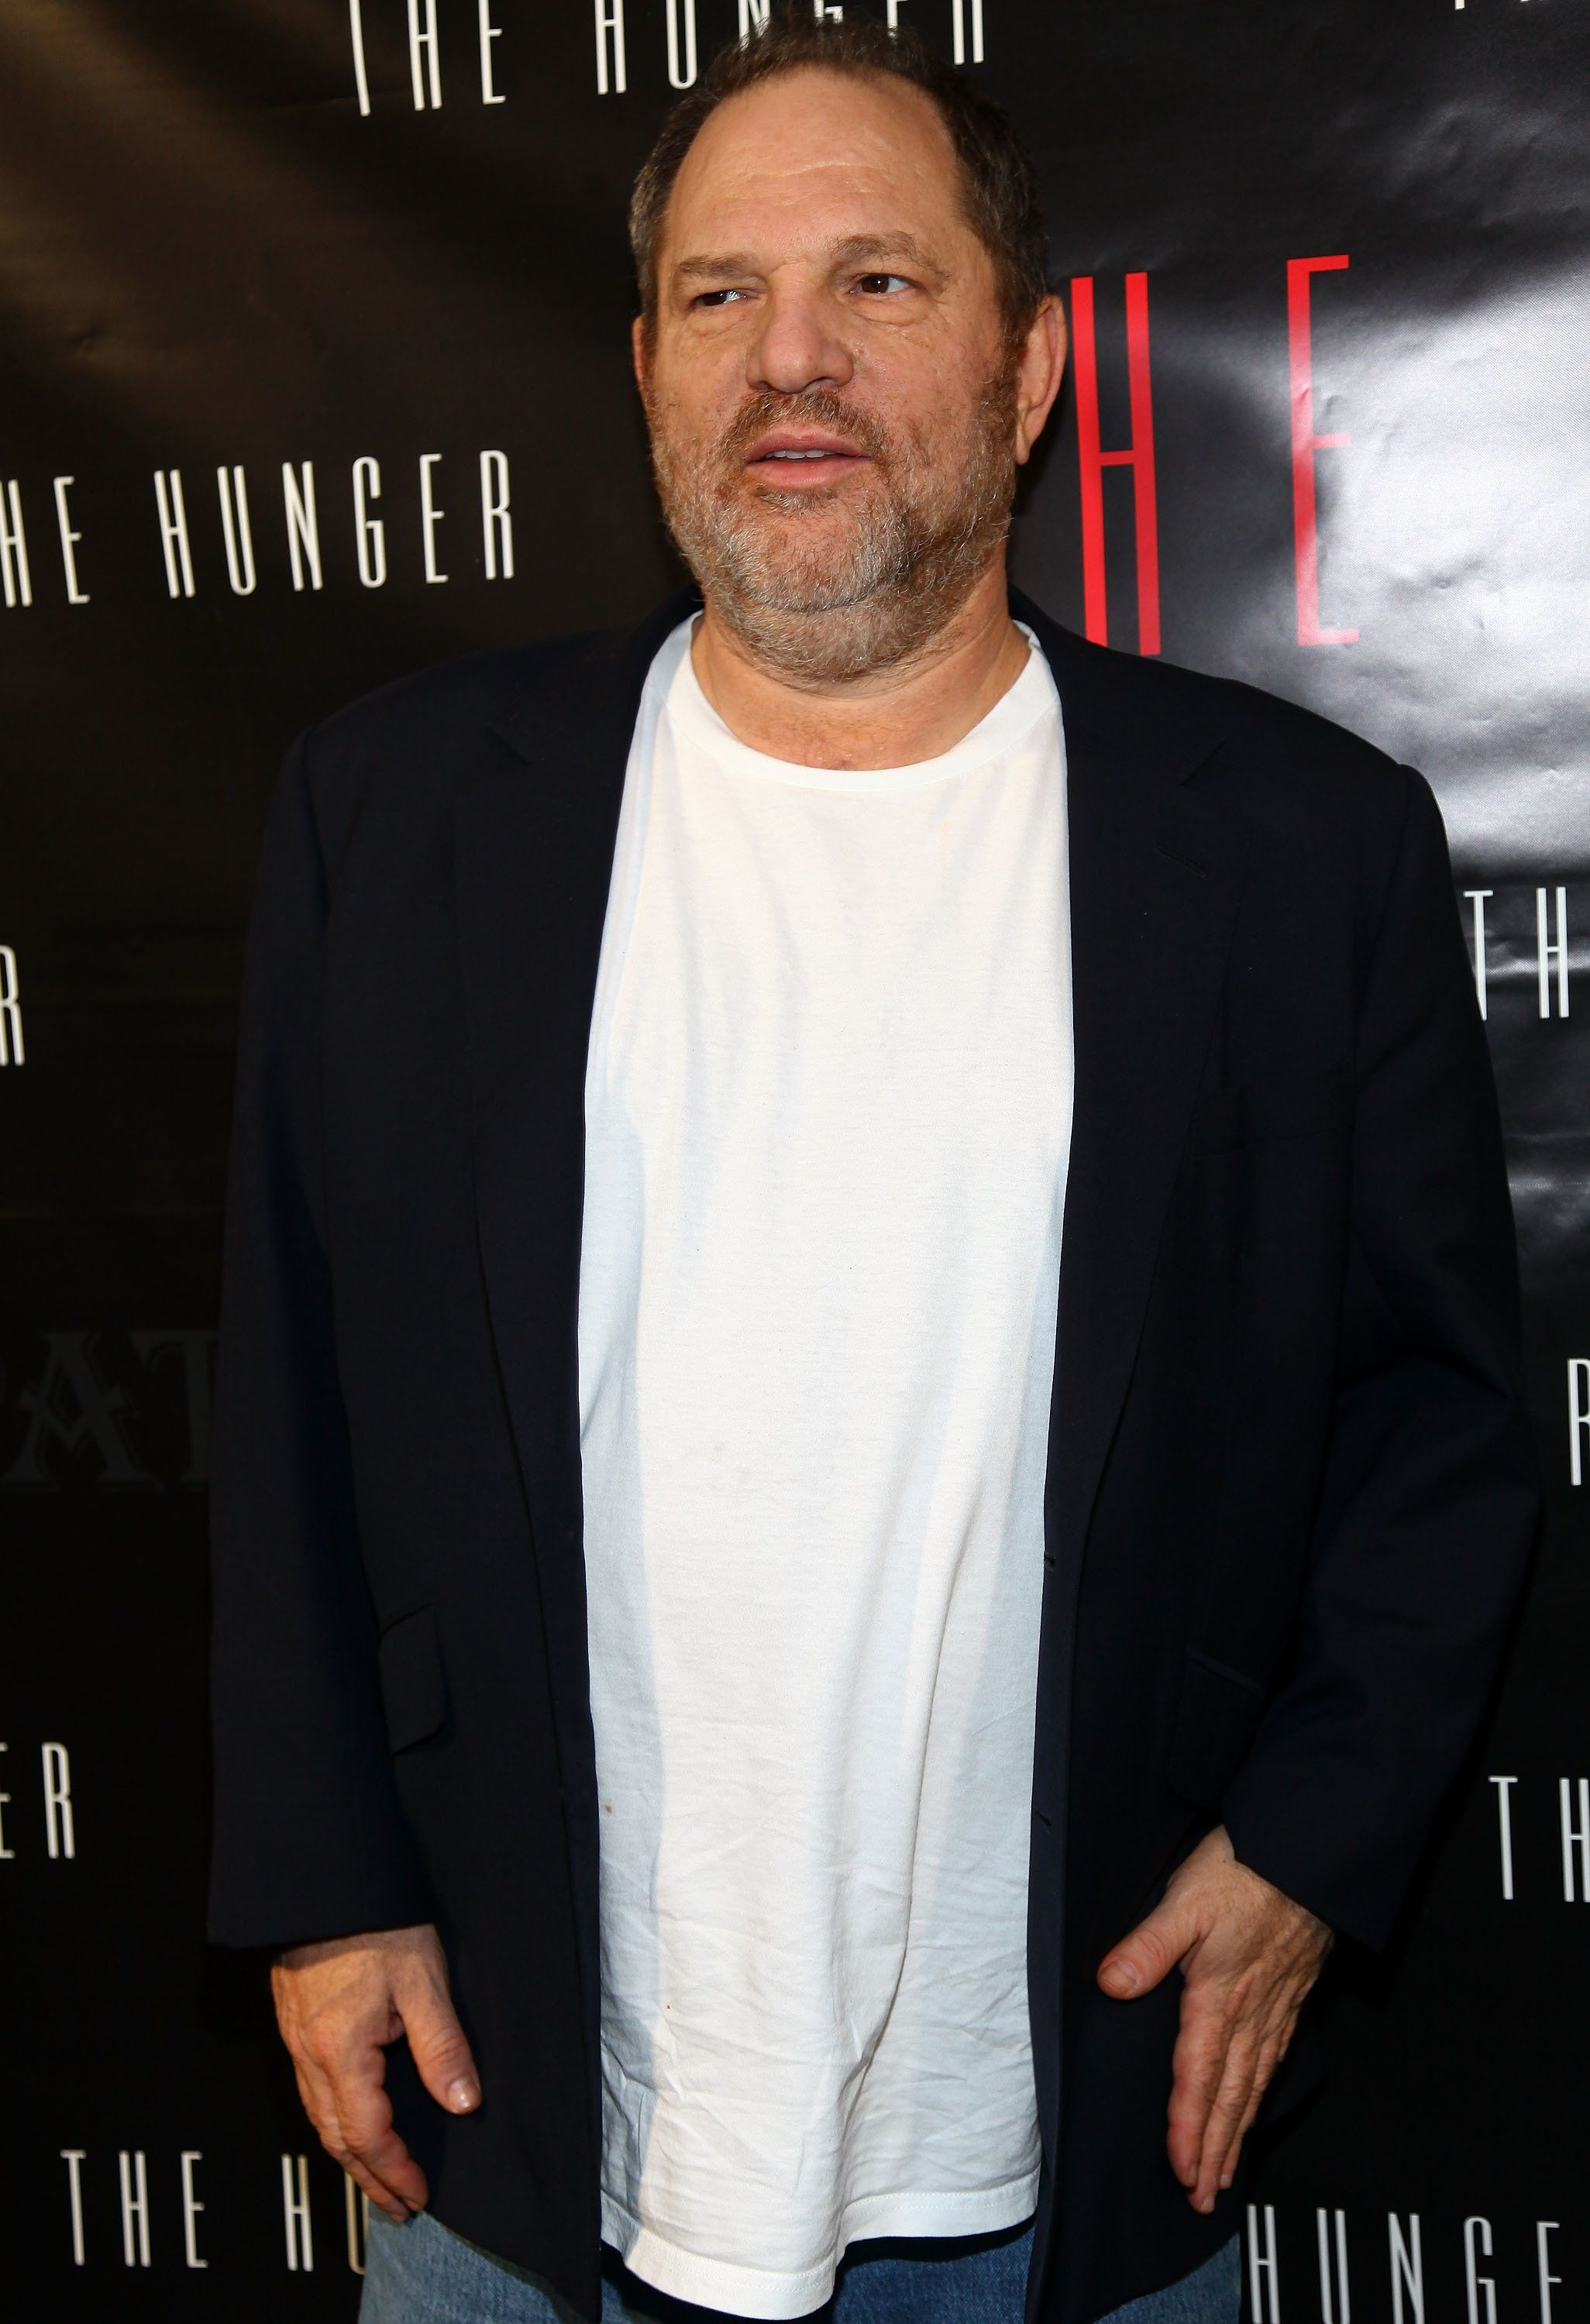 Harvey Weinstein attends a book launch in 2009.